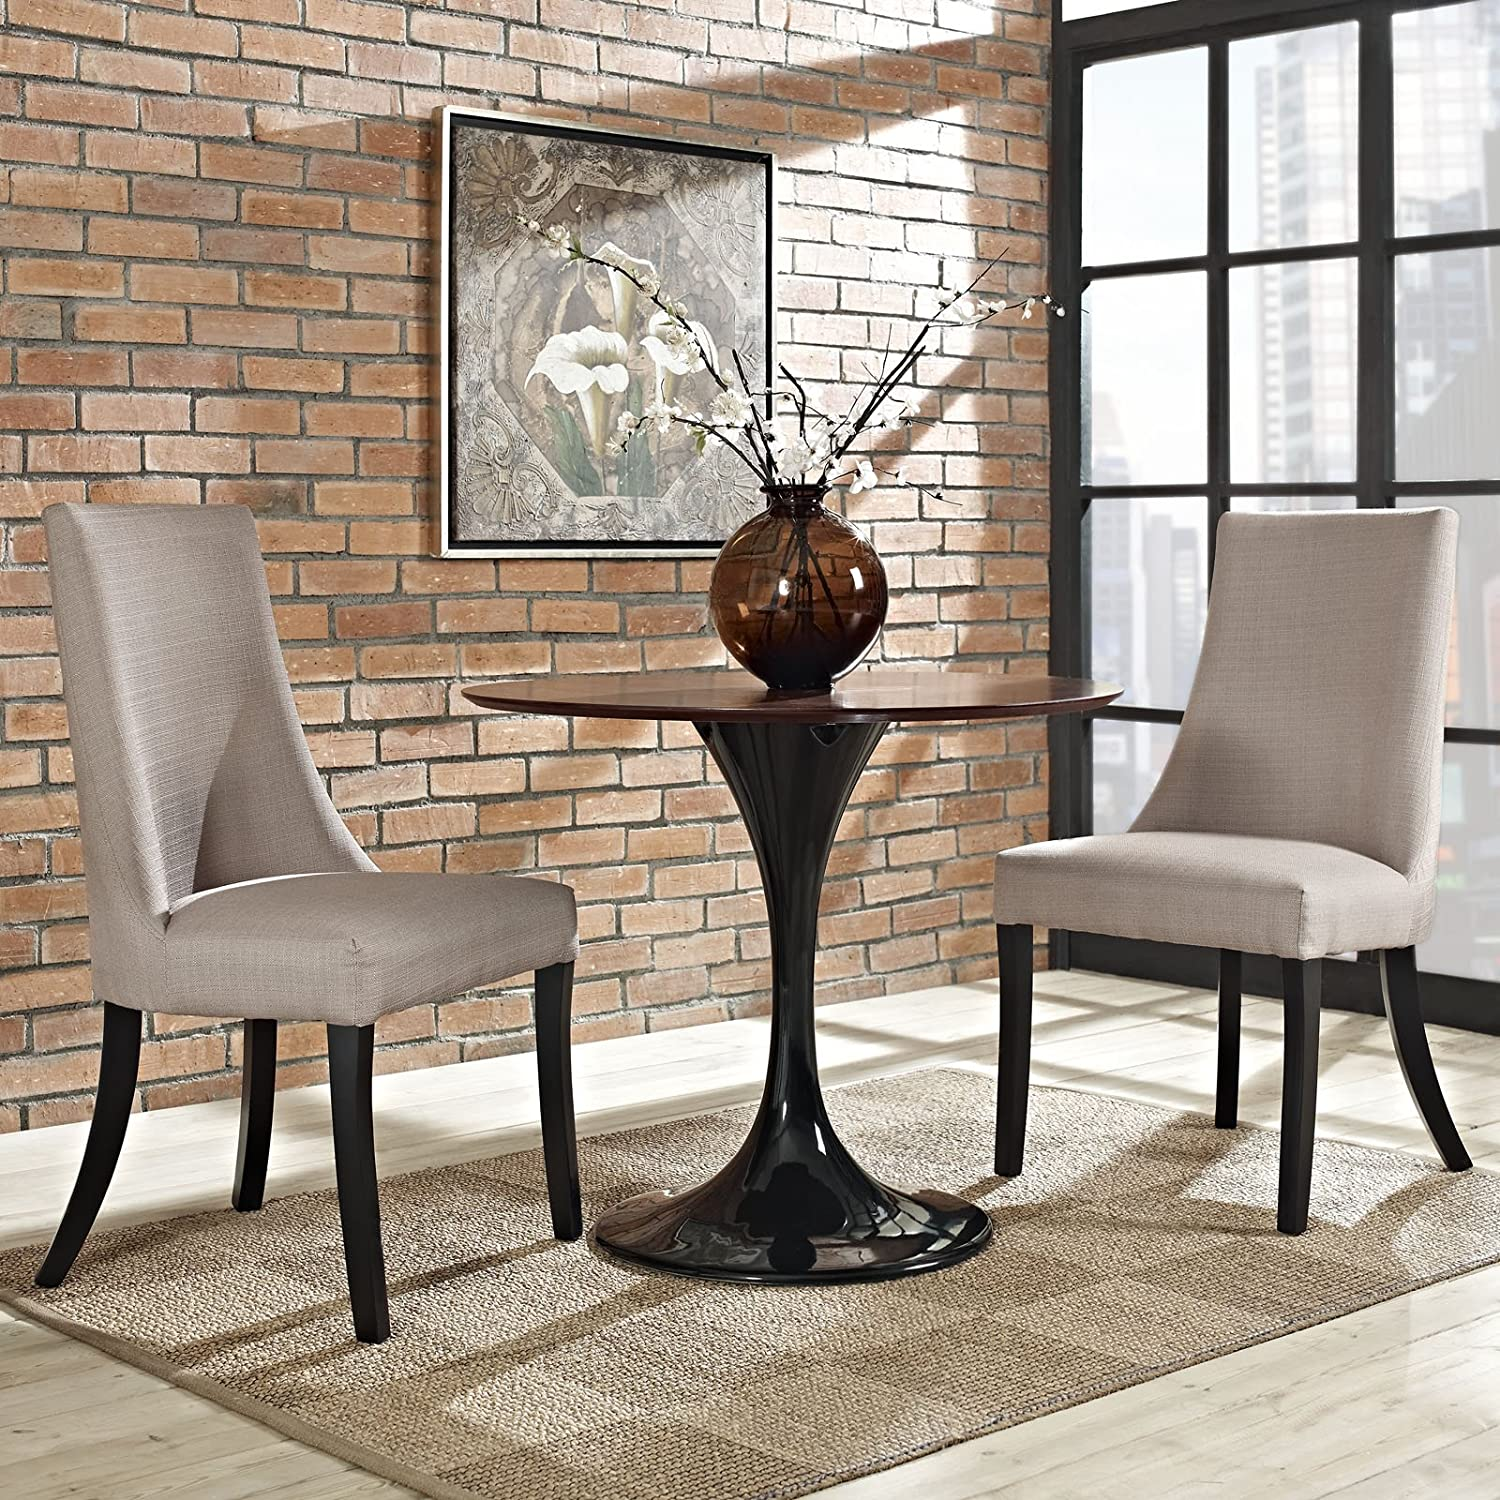 Modway Reverie Modern Upholstered Fabric Parsons Two Kitchen and Dining Room Chairs in Beige